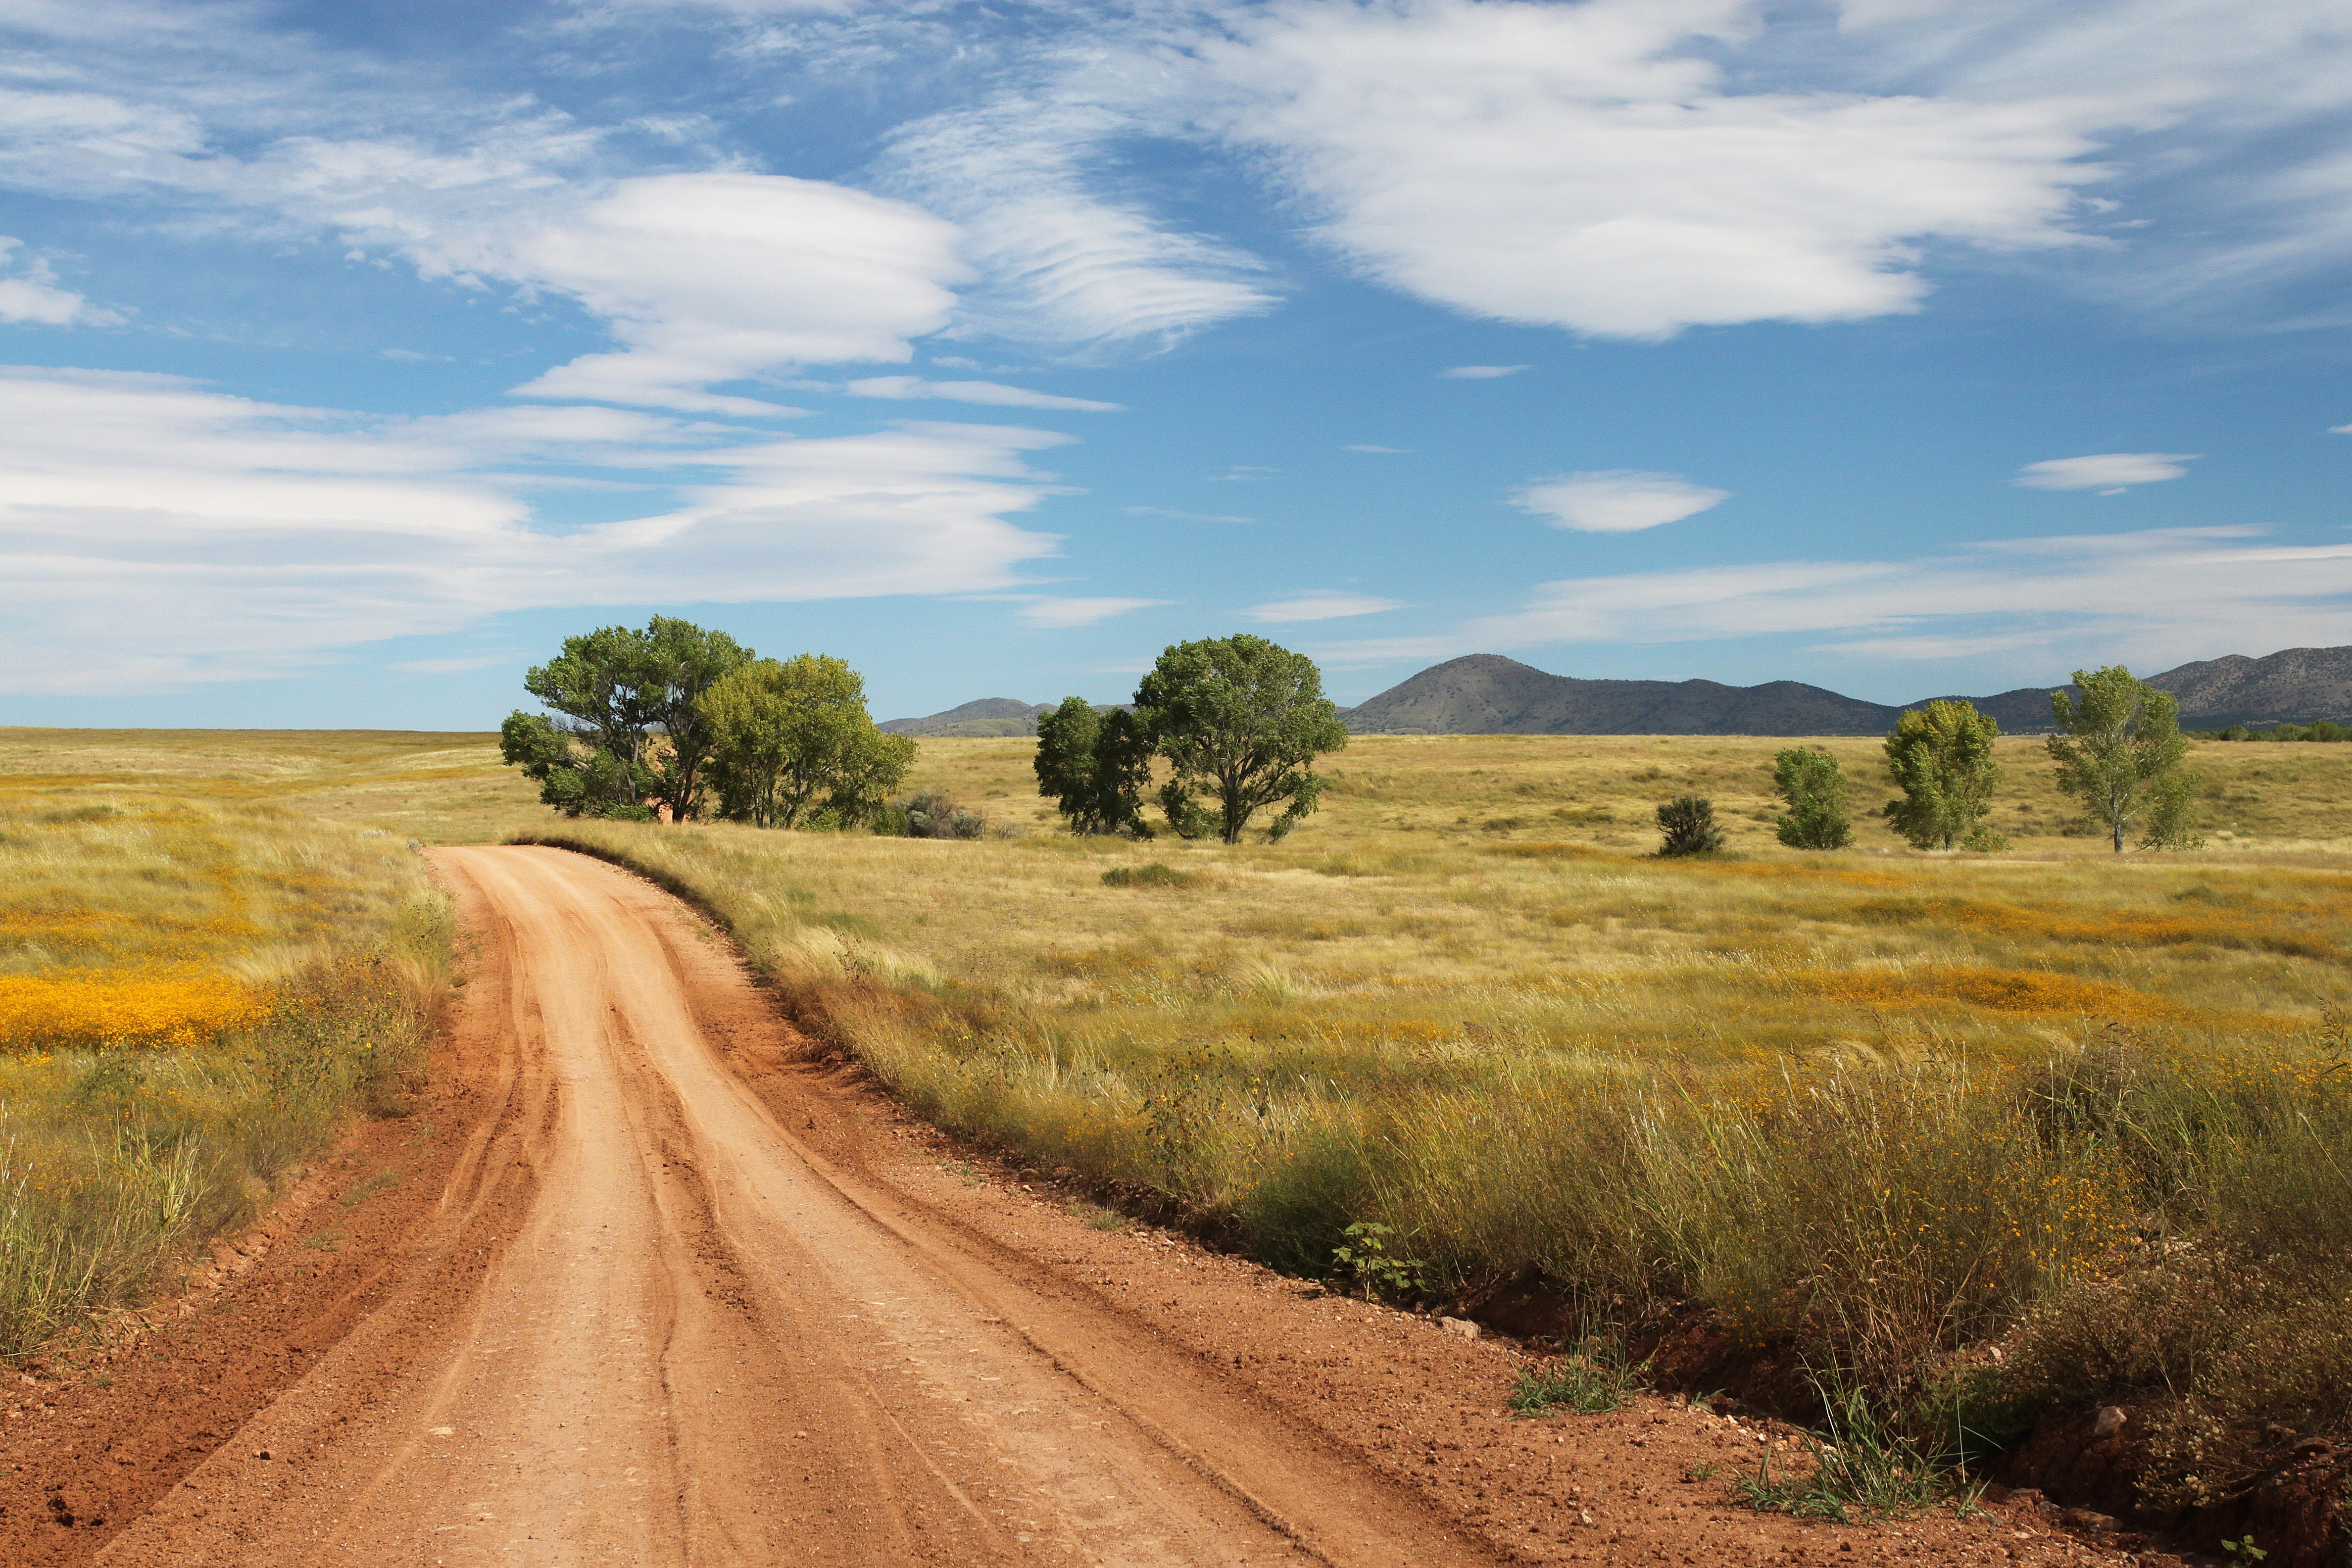 Brown Road Going to the Mountain Photography, Countryside, Dirt road, Grass, Landscape, HQ Photo